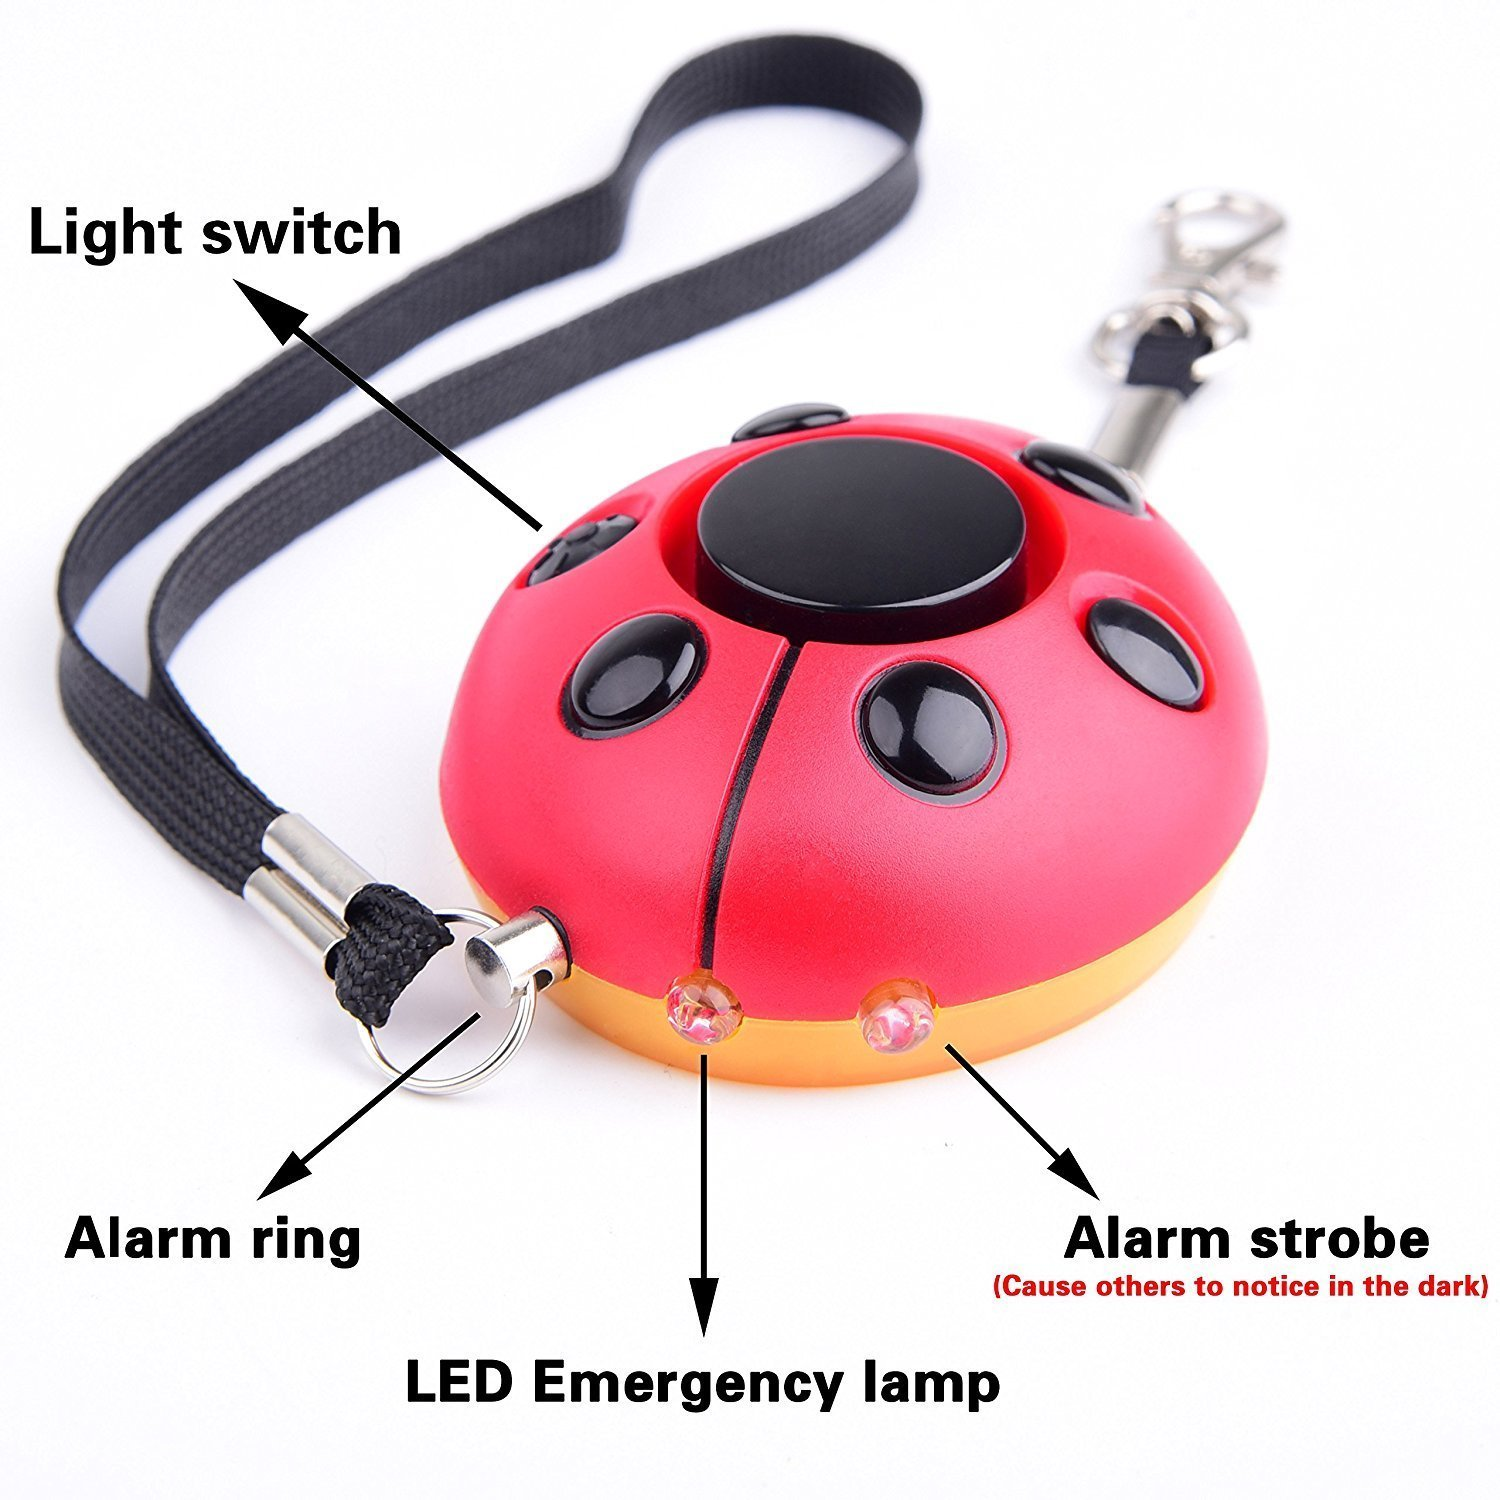 Emergency Personal Alarm New Keychain/The Wolf Alarm/Elderly/Kids Tracker, Safety/Attack/Protection/Panic/Self Defense Electronic Device, Good for Who Work at Night, As A Bag Decoration, 130 DB 7PRODUCTGROUP A-02